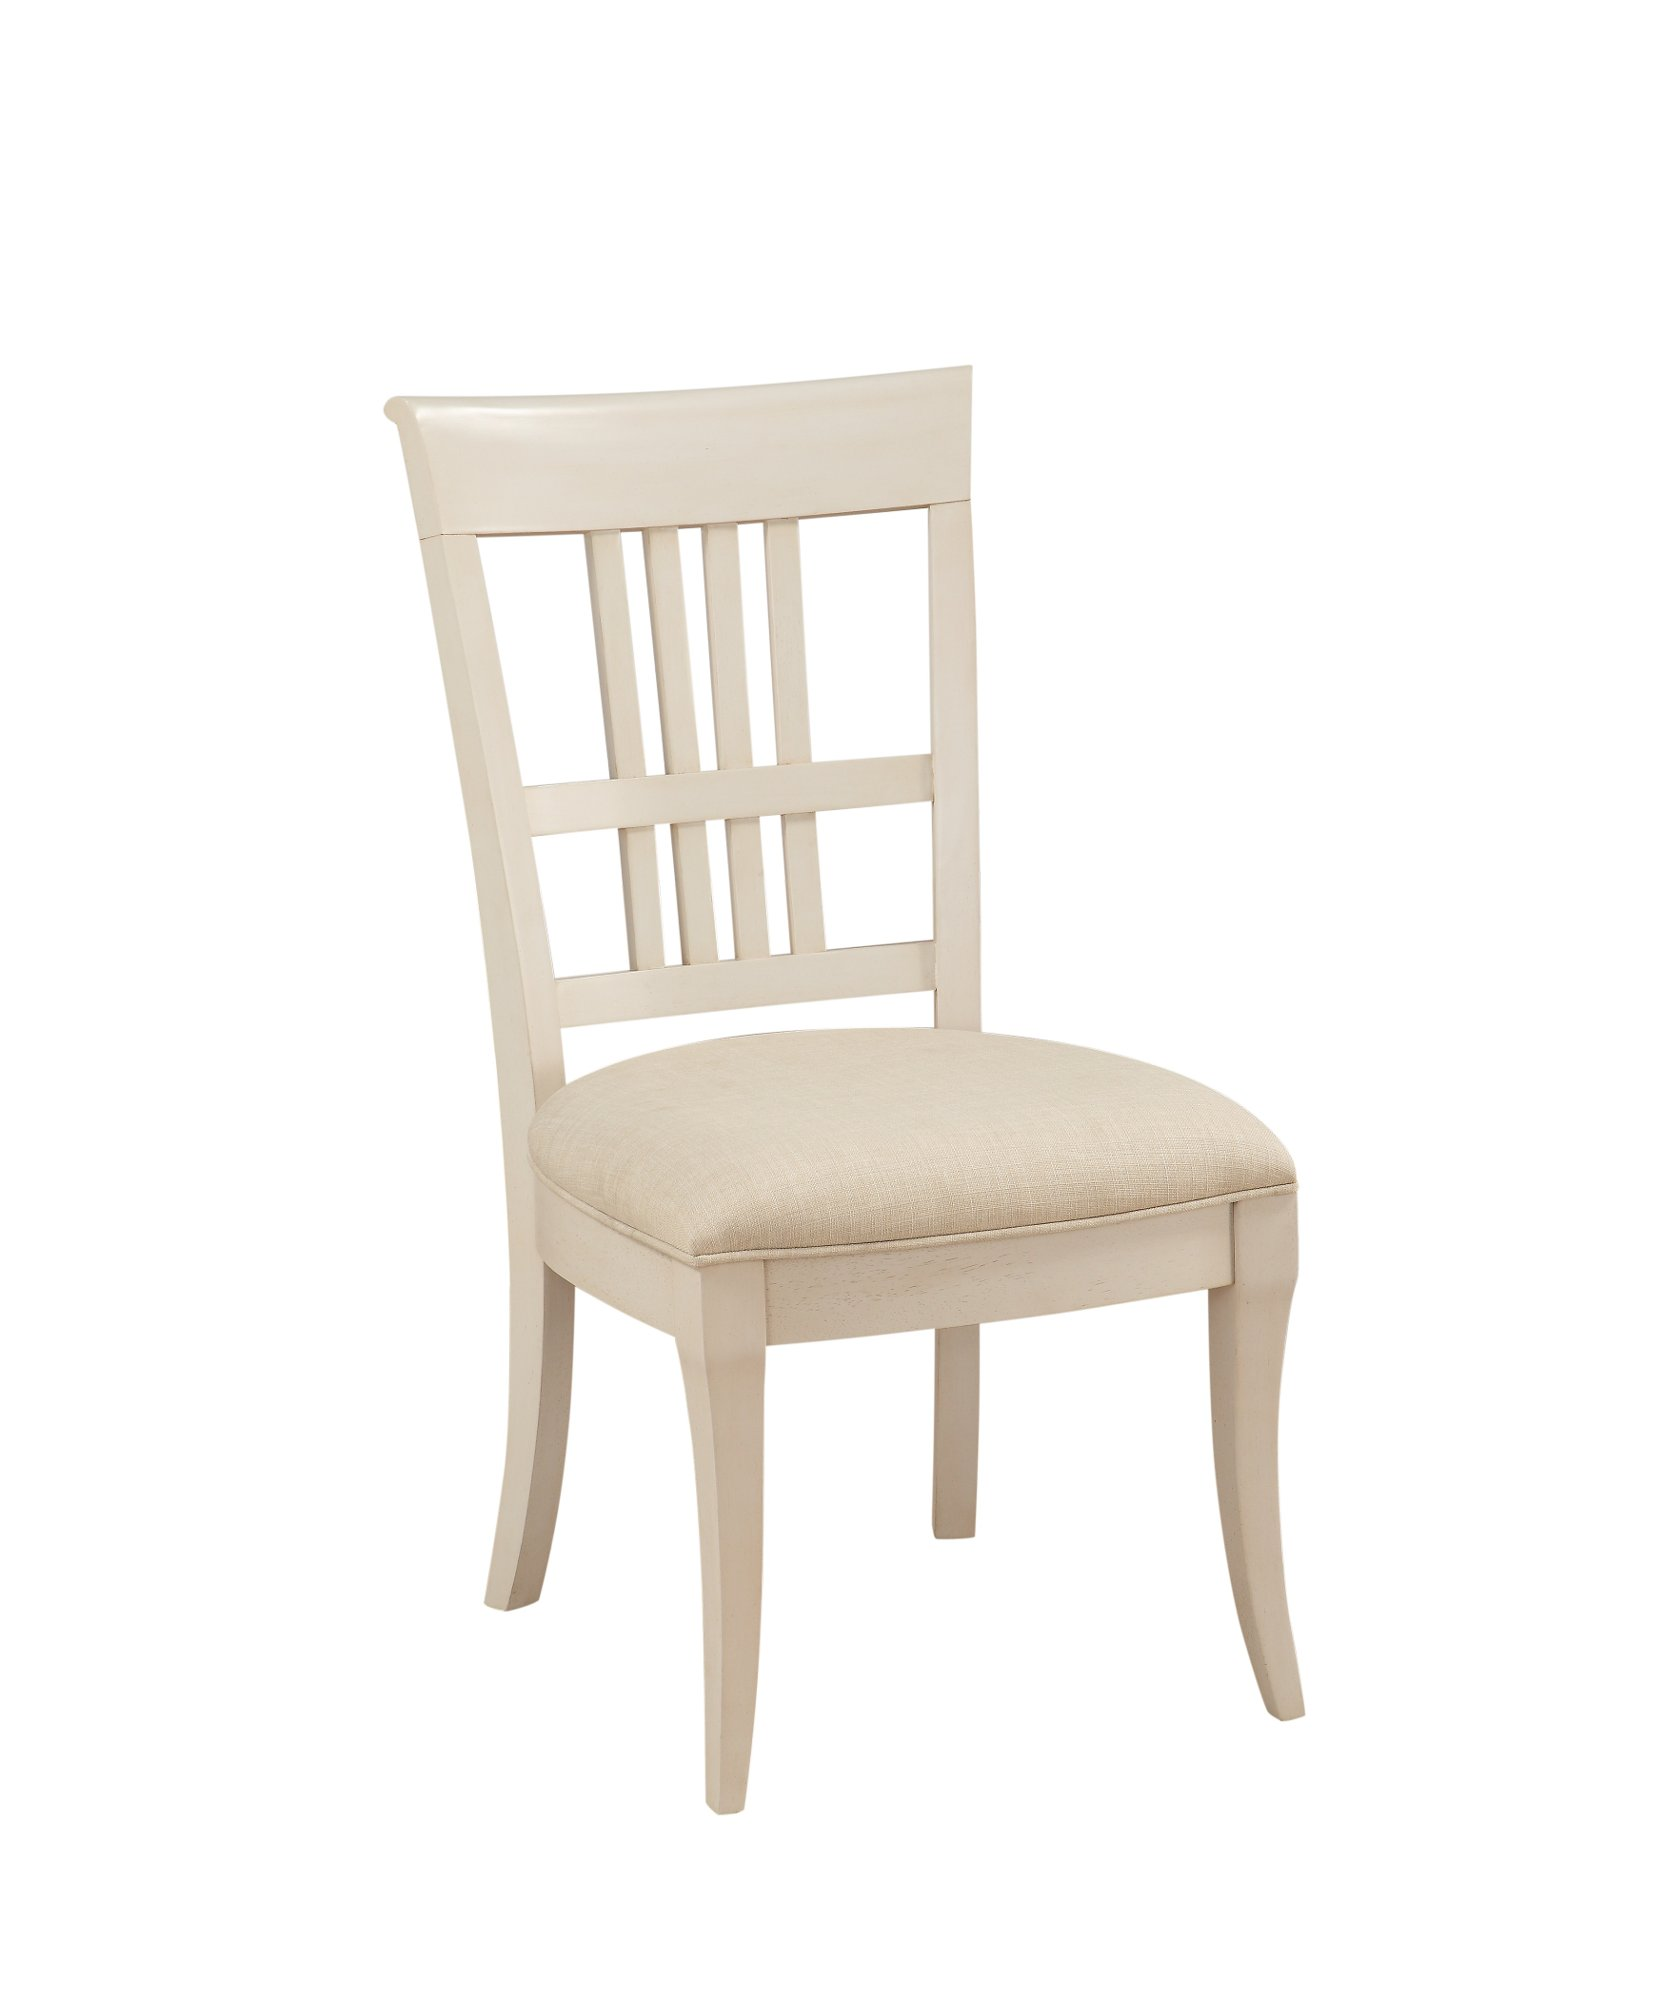 Whitewash Dining Chairs Magnolia Dining Chair Whitewash  : White Wash Dining Room Chair Monterey Collection rcwilley image1 from honansantiques.com size 1666 x 2000 jpeg 74kB